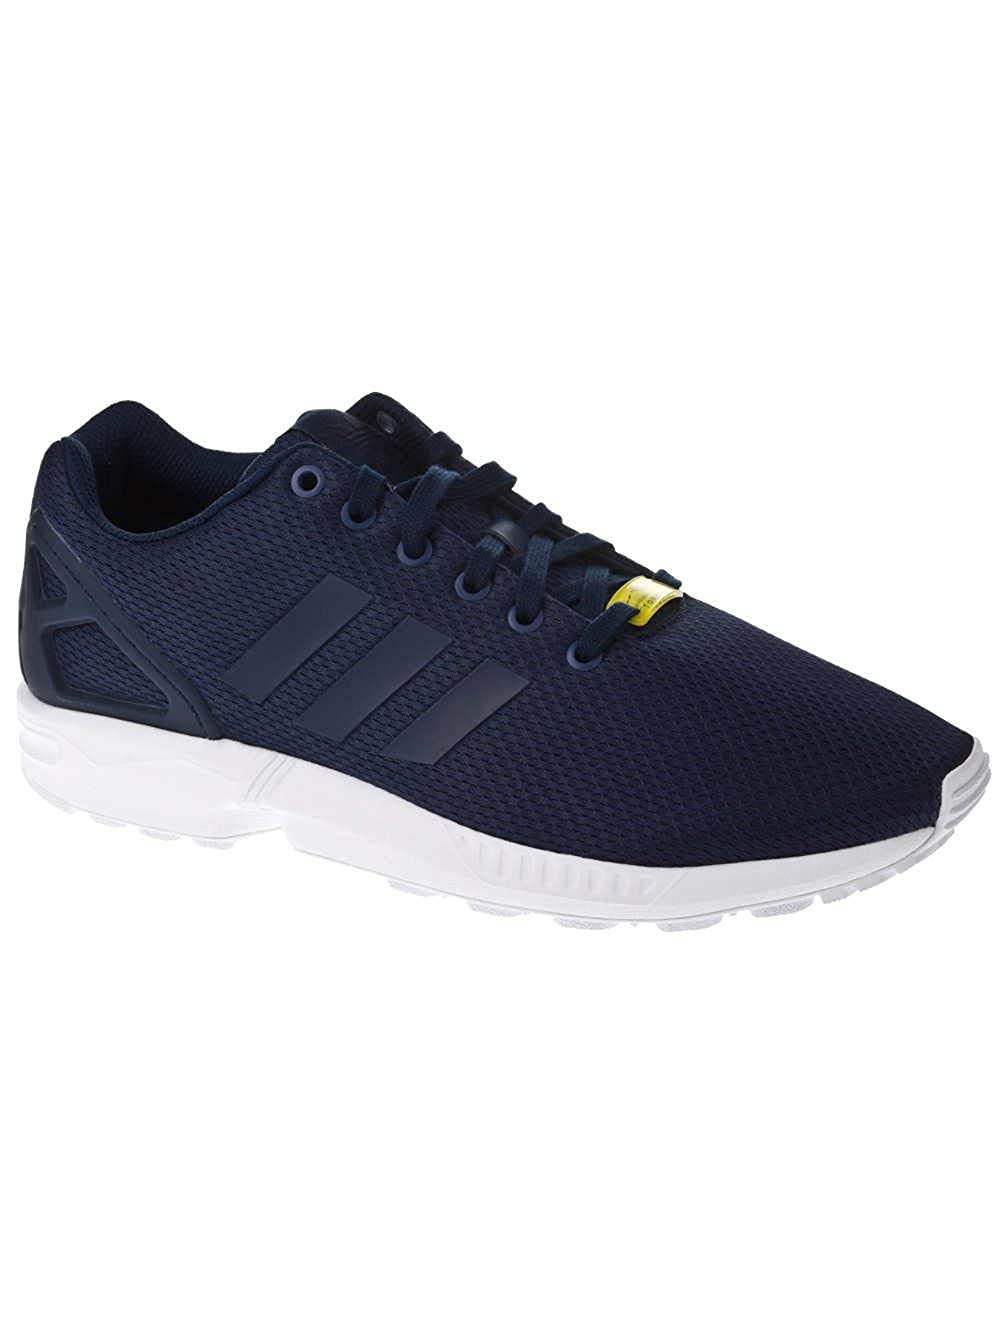 premium selection 2f6db 865ae adidas ZX Flux Navy White Mens Trainers Size 9.5 UK